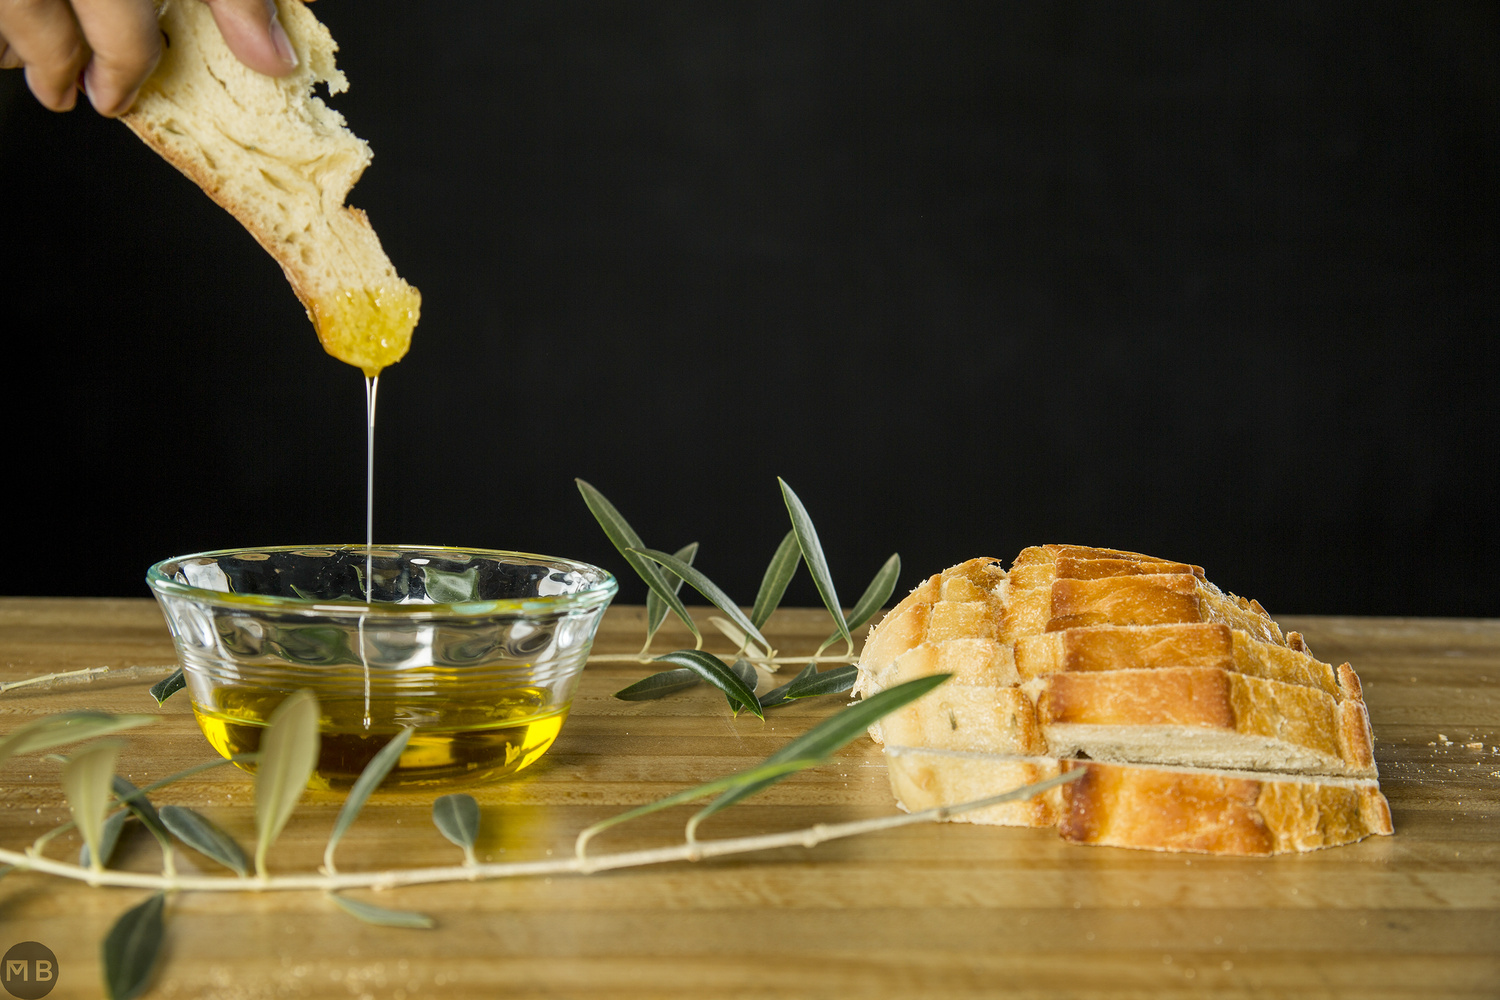 Olive Oil with bread by Markus Baumbach